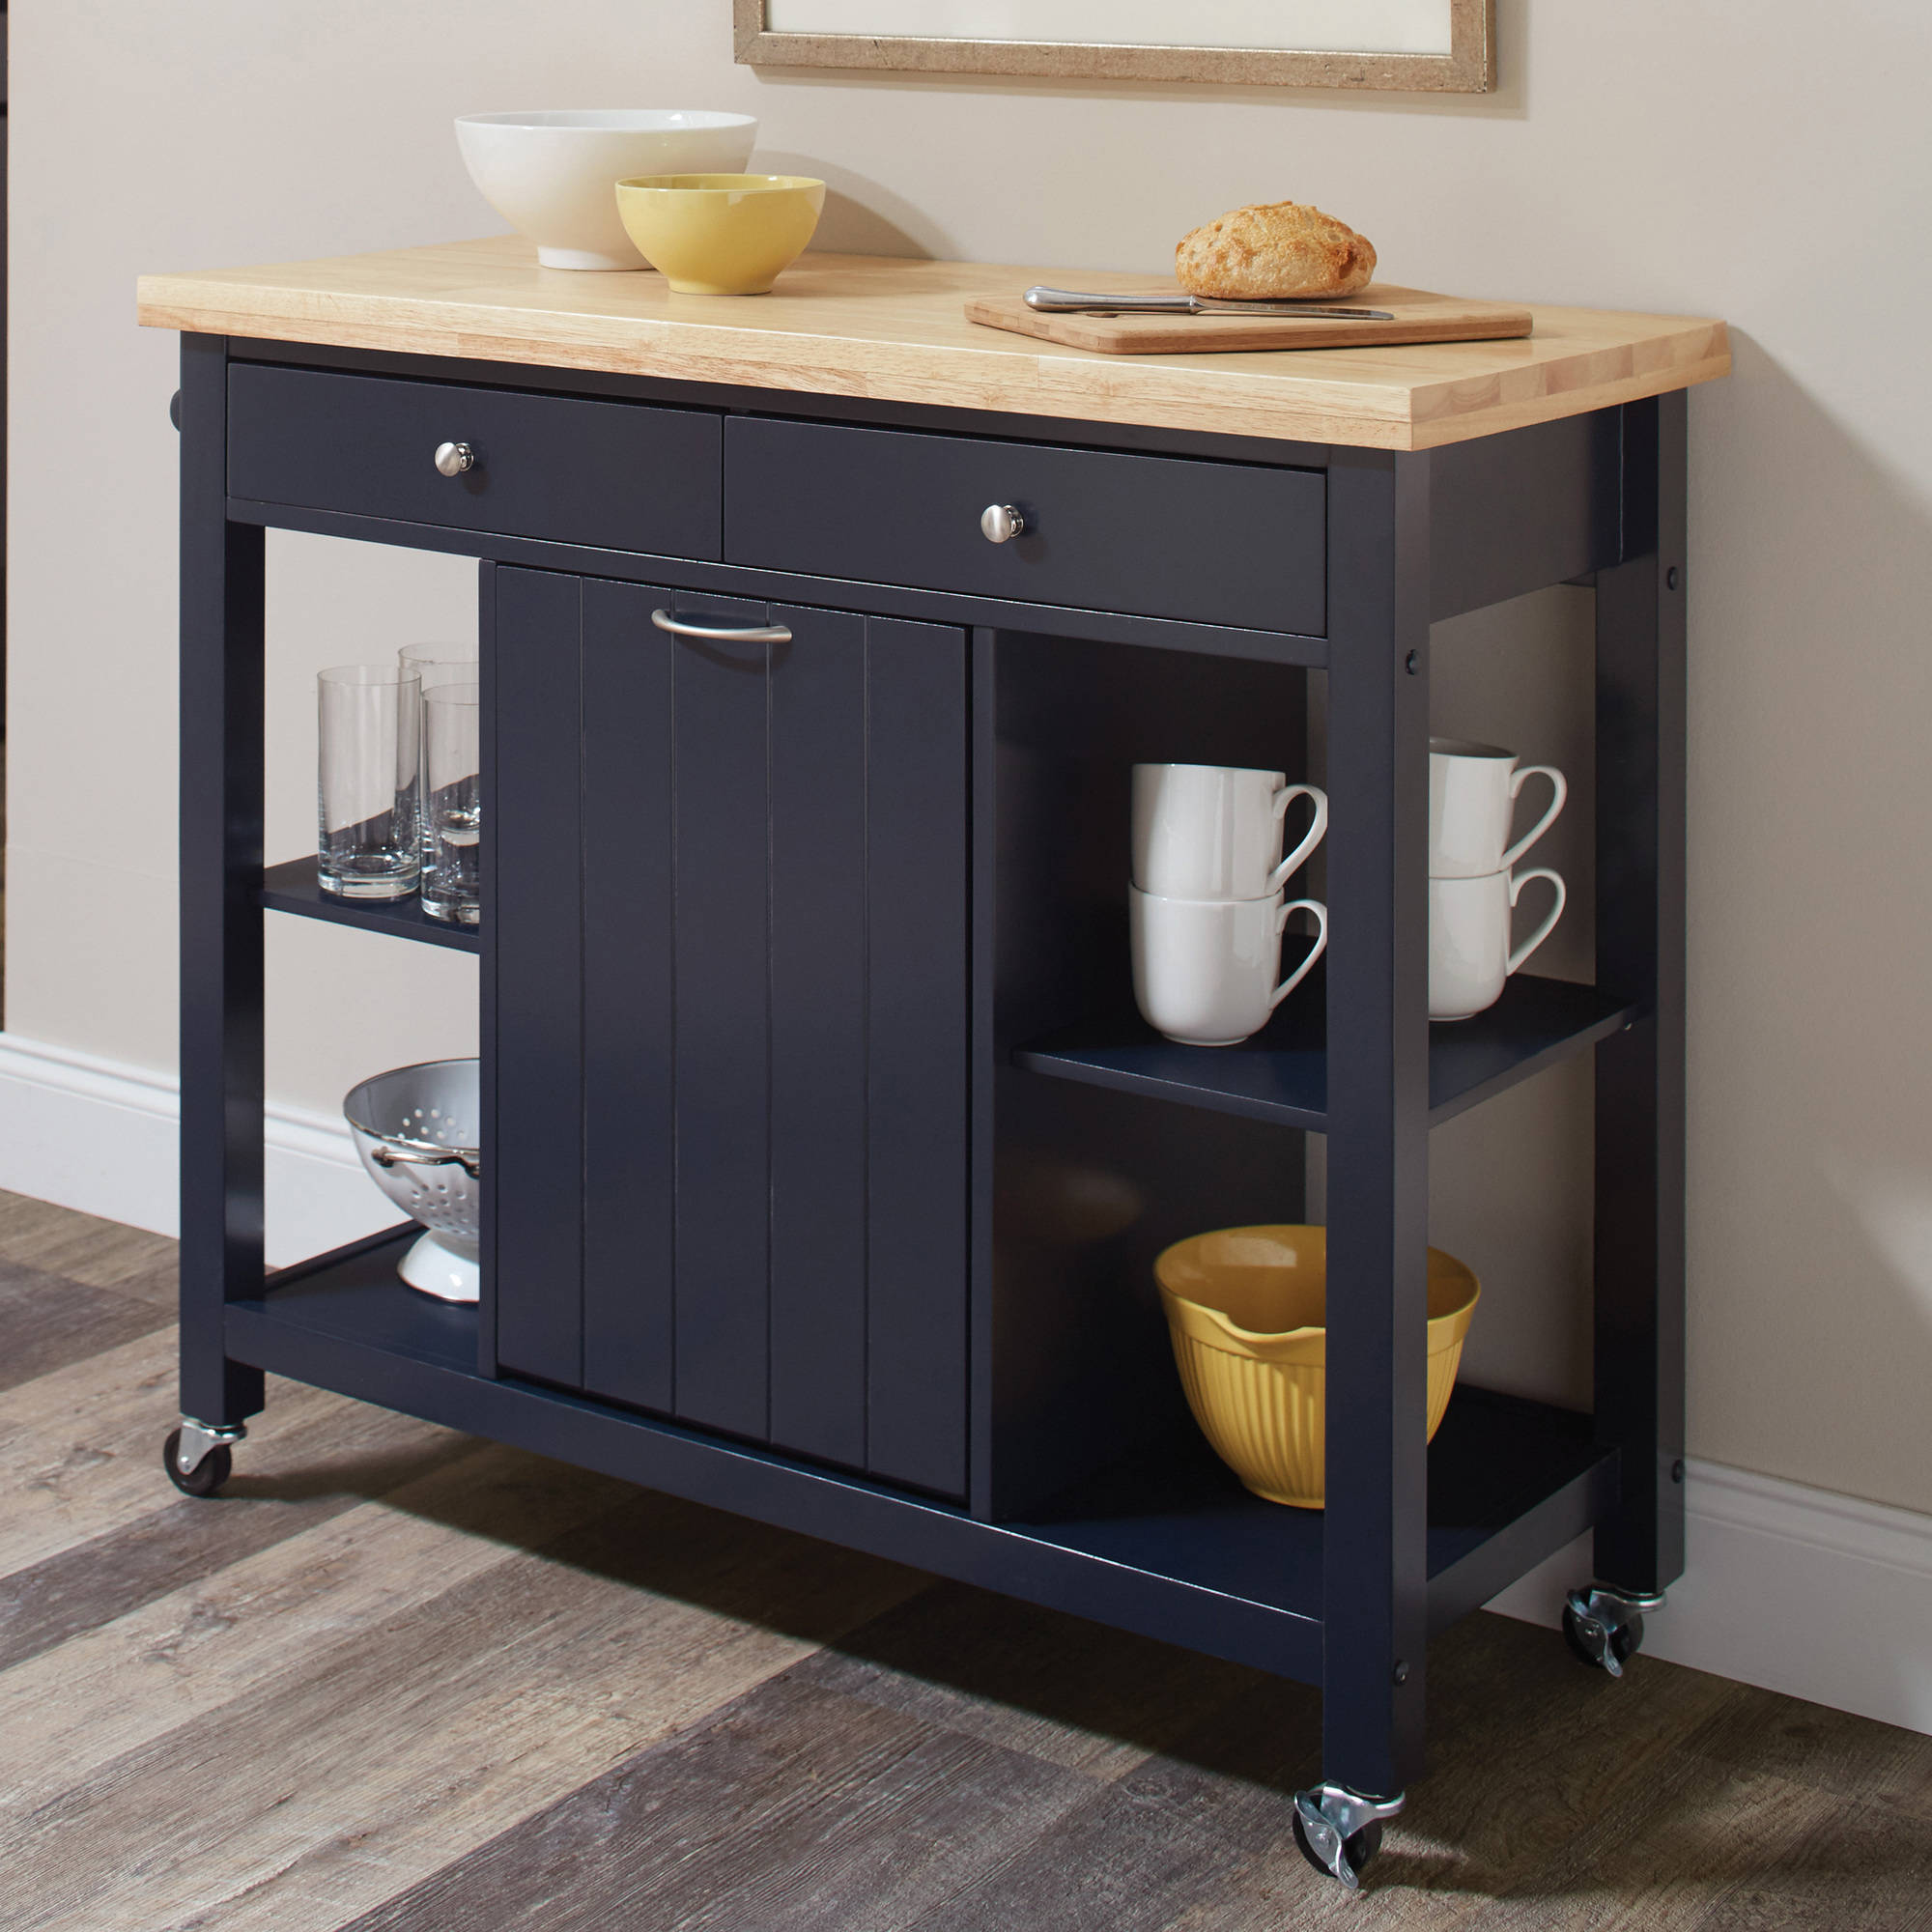 Coaster Company Kitchen Cart With Garbage Compartment, Natural and Navy Blue by Coaster Company